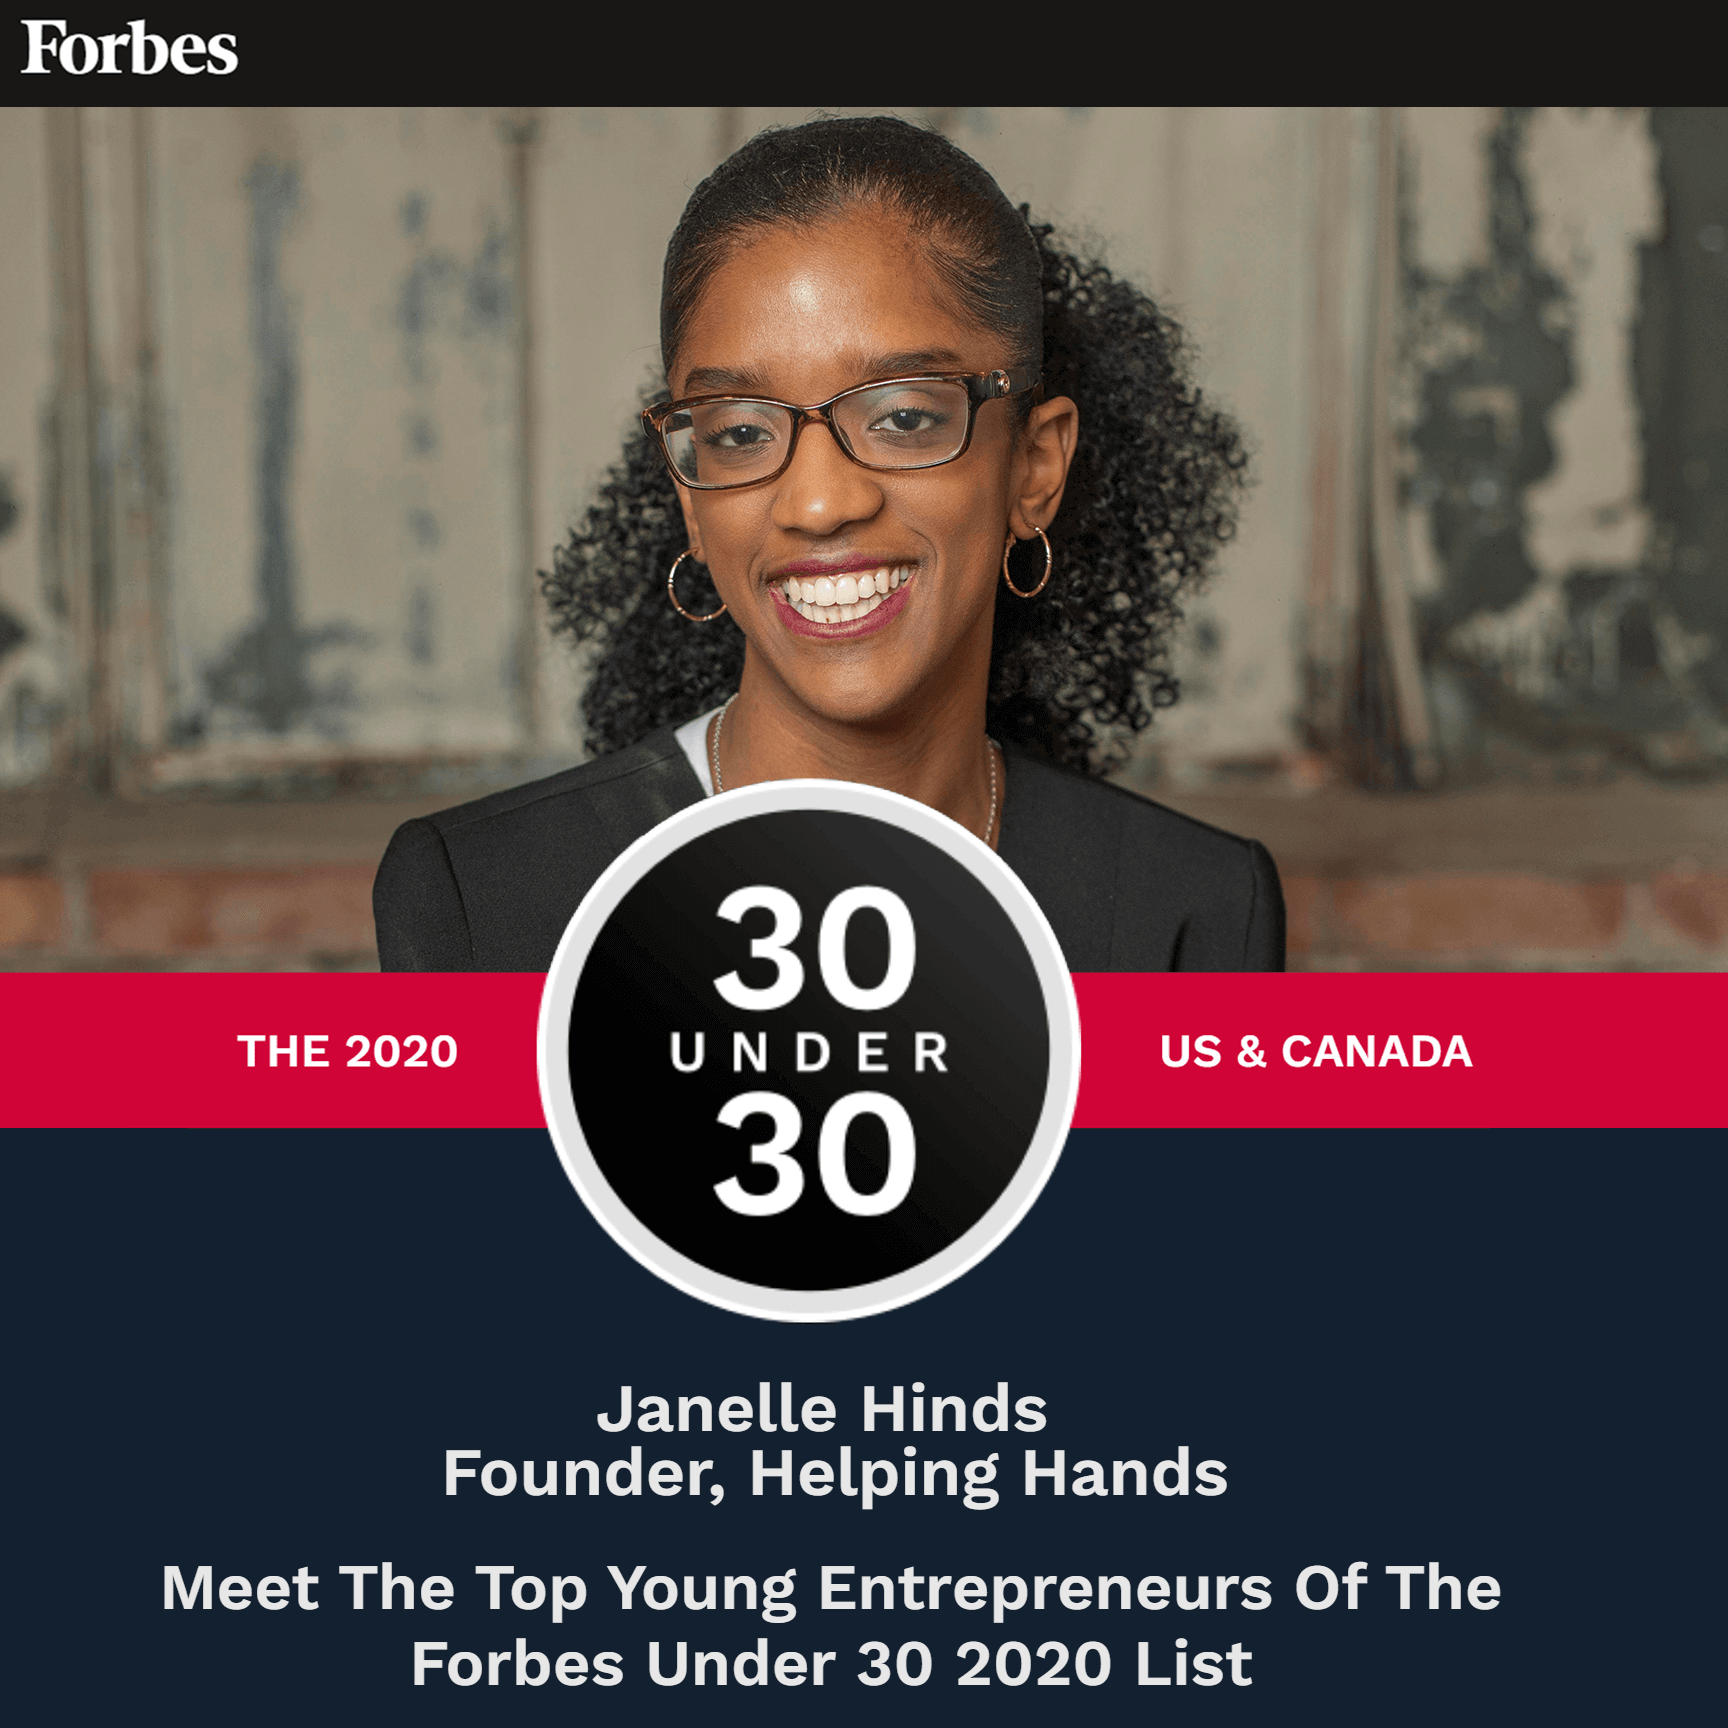 Founder Janelle Hinds featured in Forbes Under 30 for education